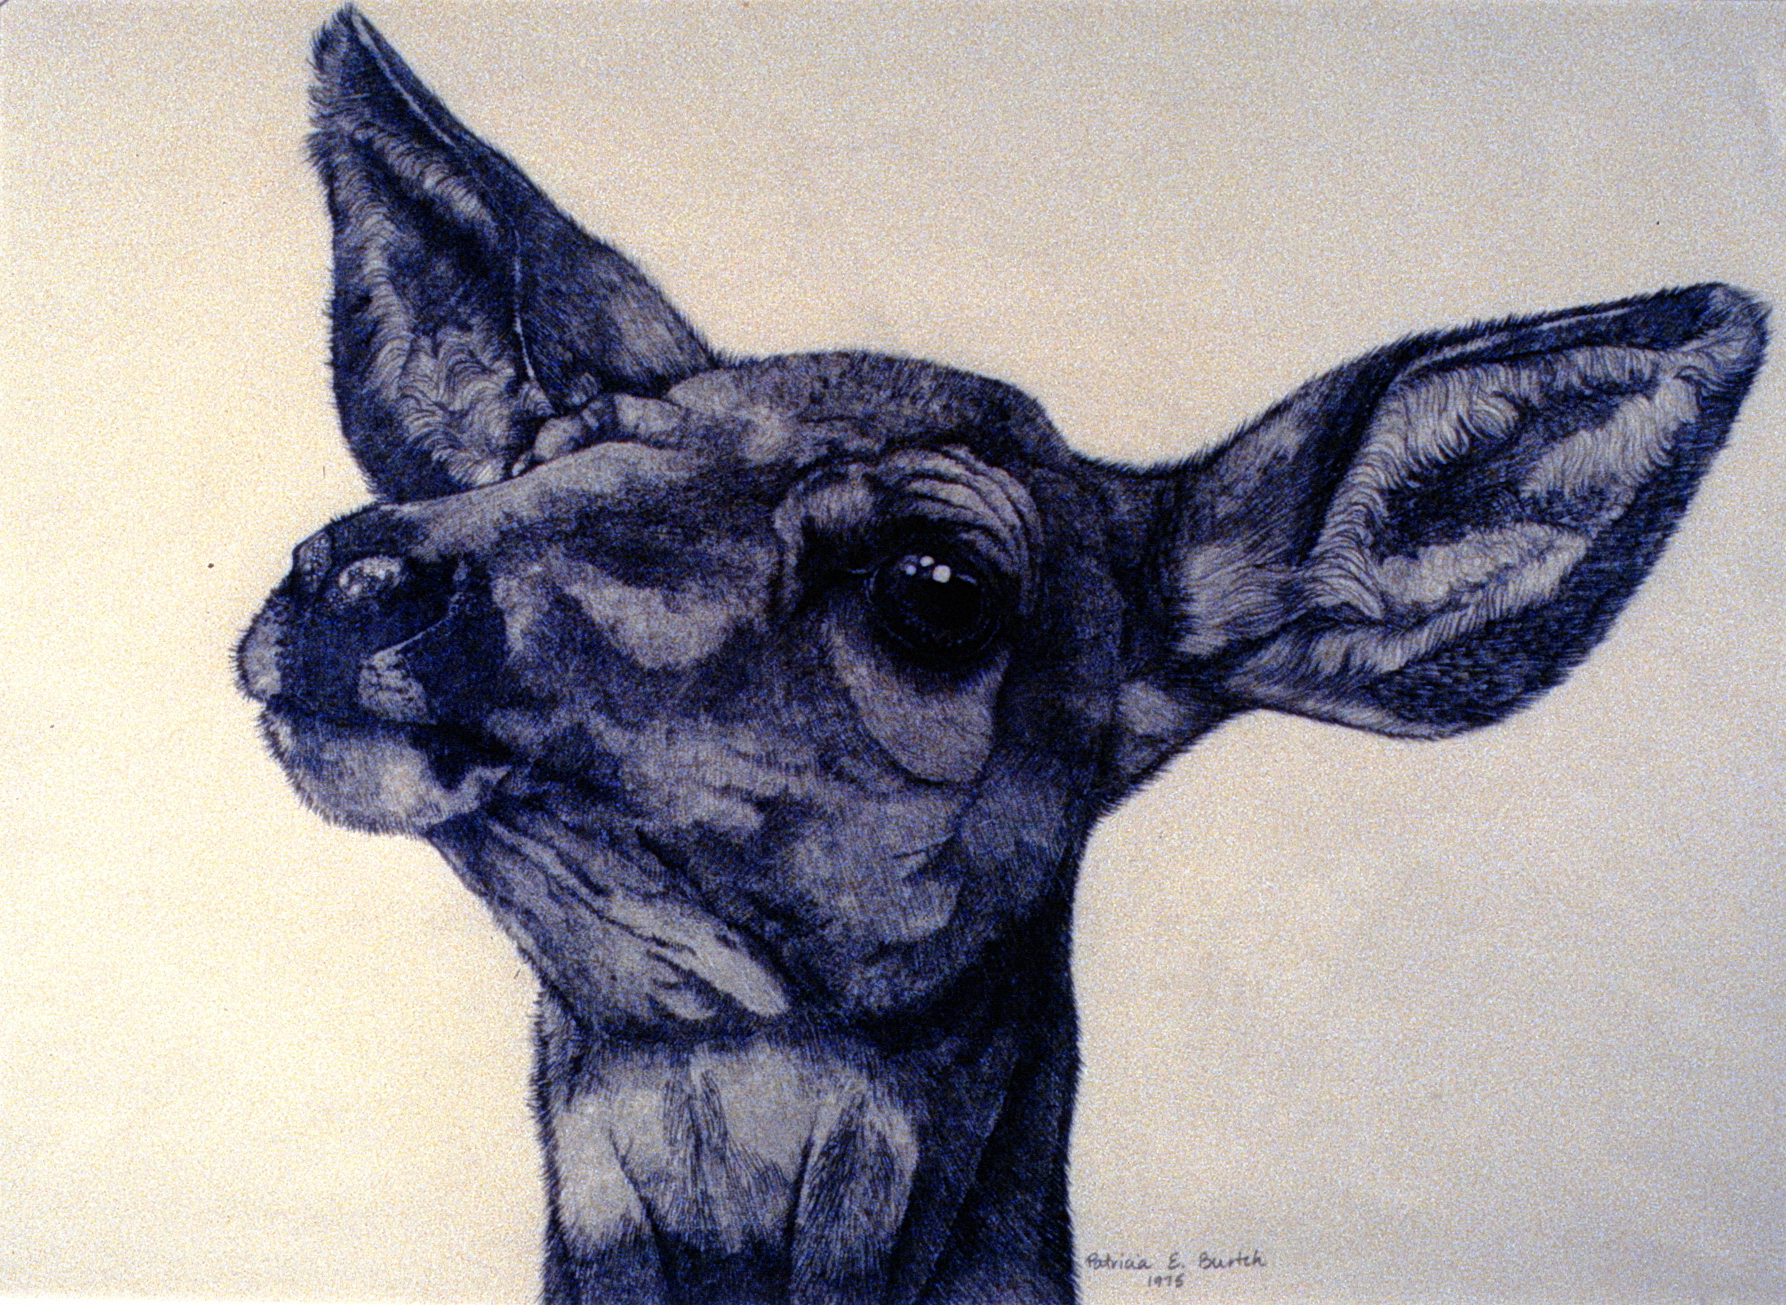 Mule Deer , 1975,Patricia Burtch, graphite on paper, 42.5 cm x 30 cm, 1977.01.01, purchased by the Selection Committee of the Penticton Arts Centre Gallery in 1972